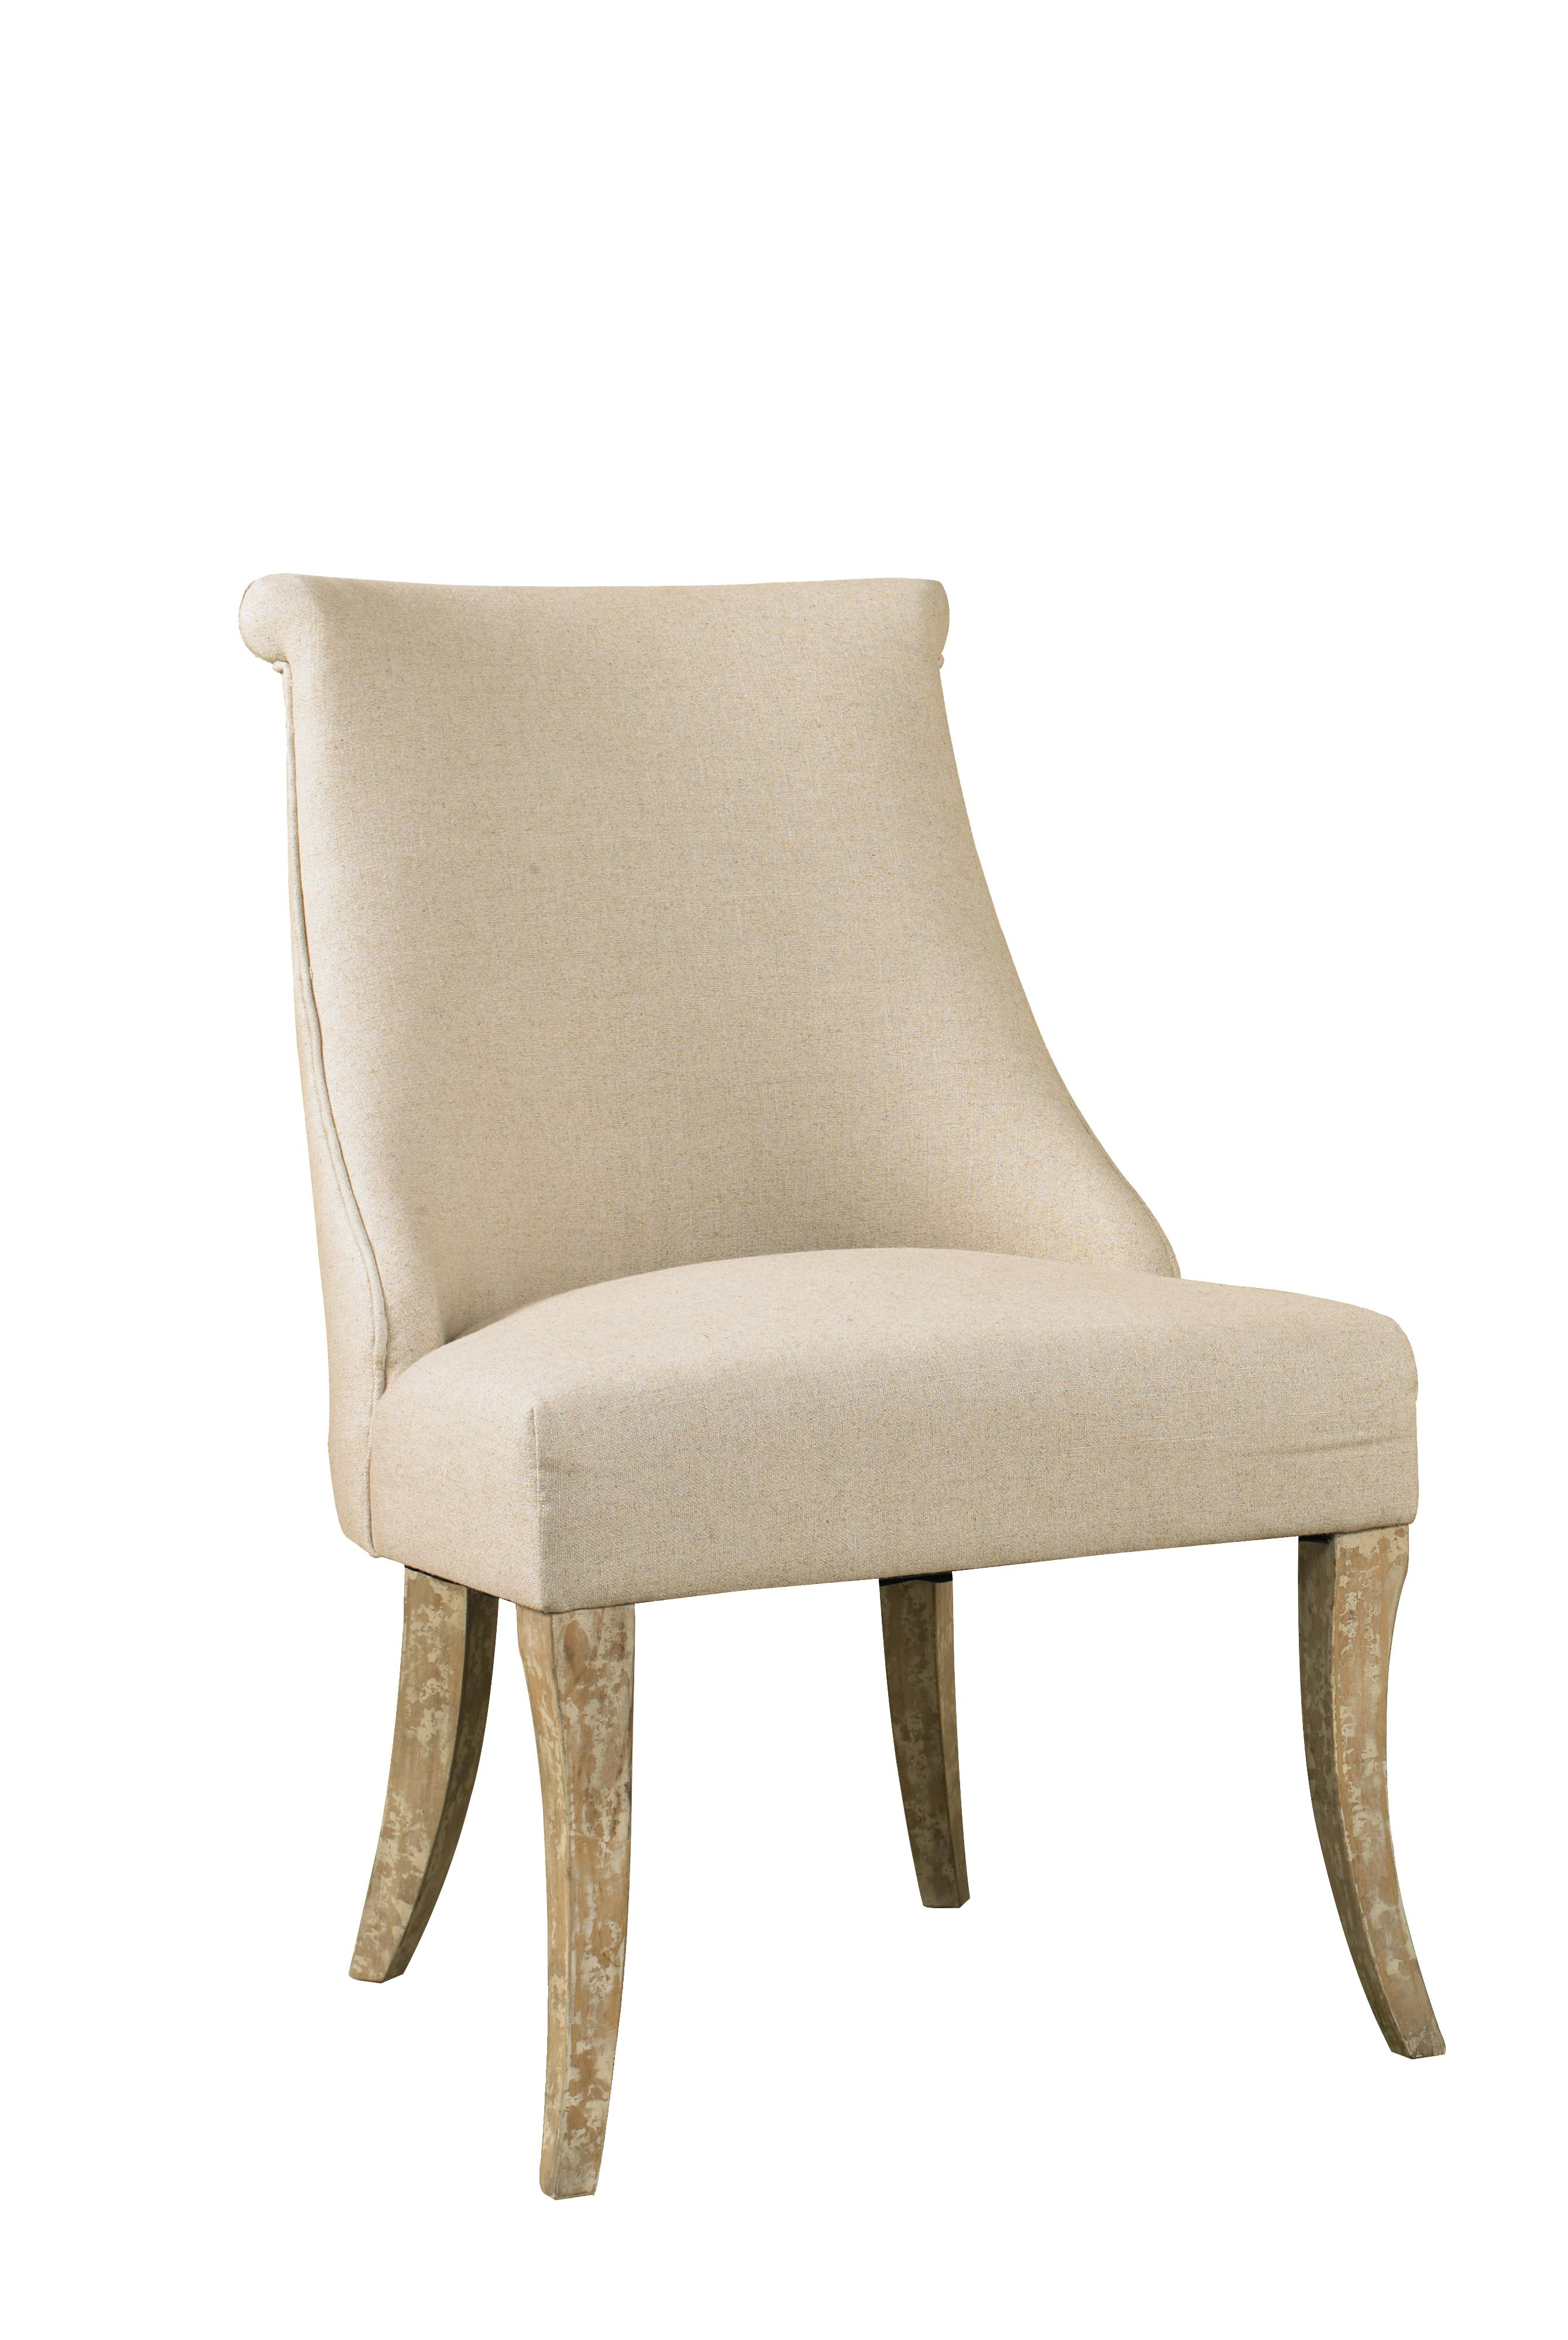 Hooker Furniture Sanctuary Jada Chair - Item Number: 200-36-071